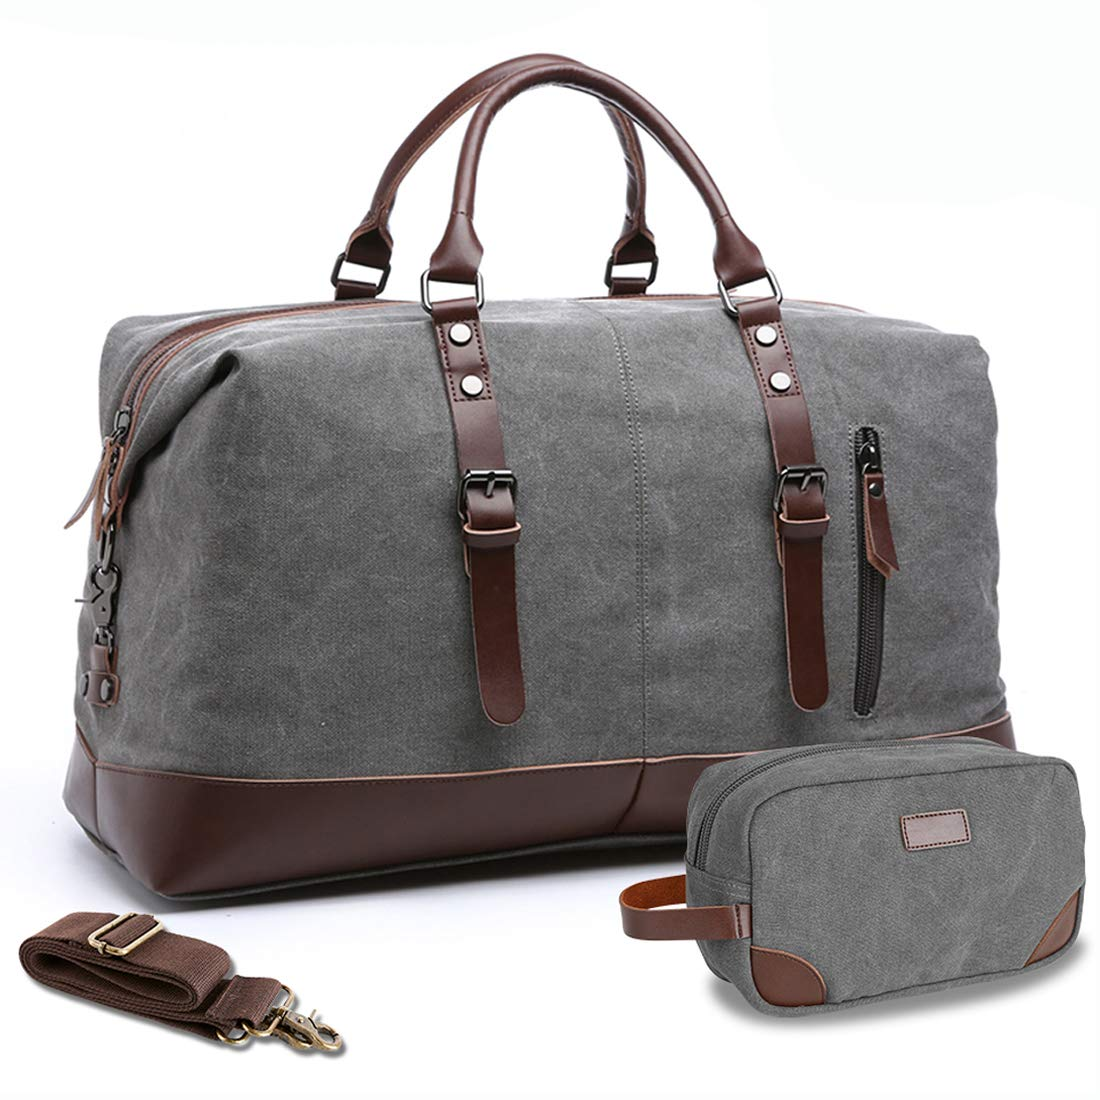 MEWAY Travel Overnight Bag Canvas Duffle Bag Oversized Luggage Bag Large Handbag for Men Women